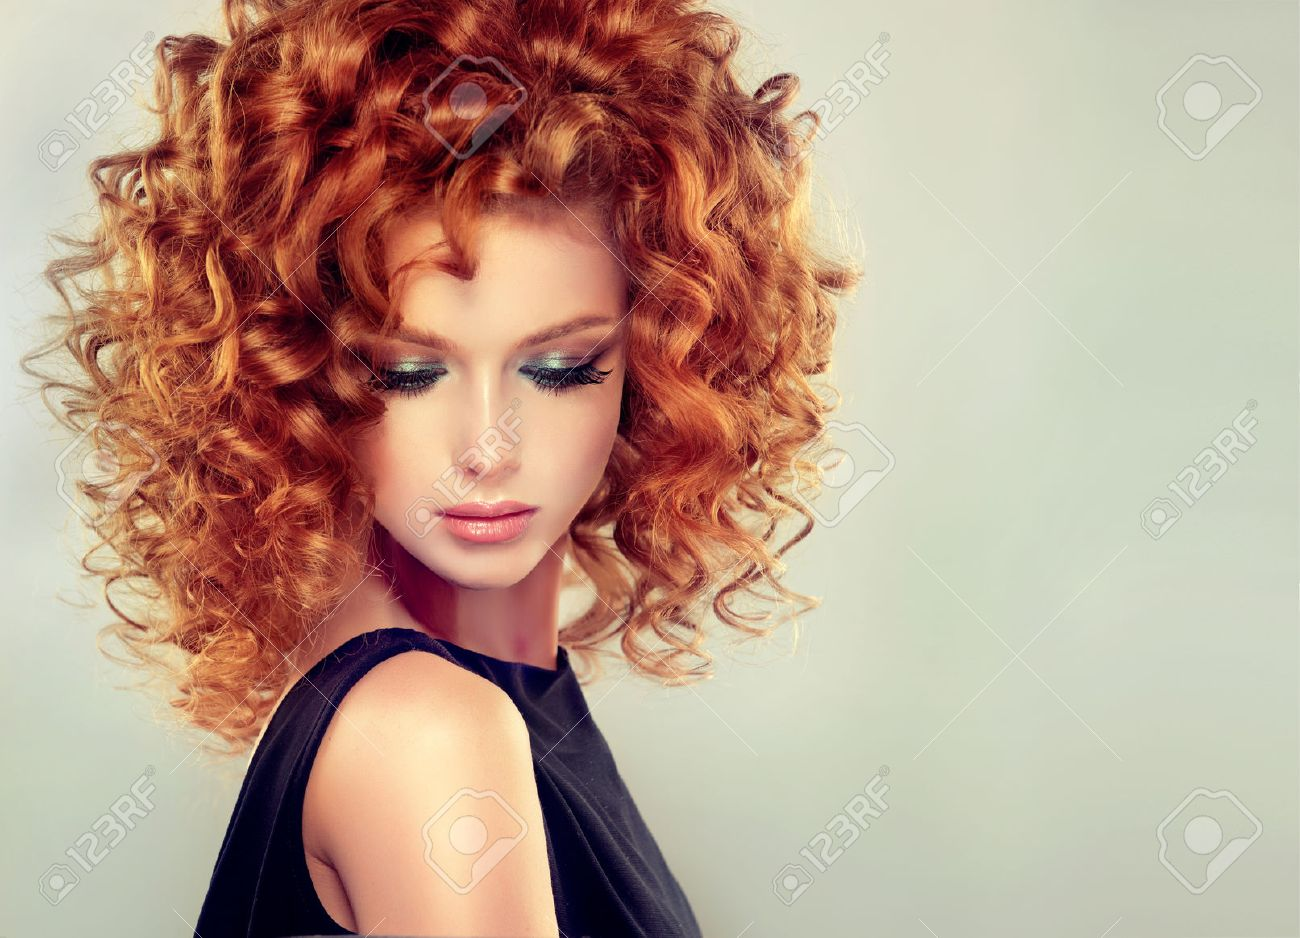 Pretty red haired girl with curly hairstyle and elegant make up. Closeup portrait. - 60303421